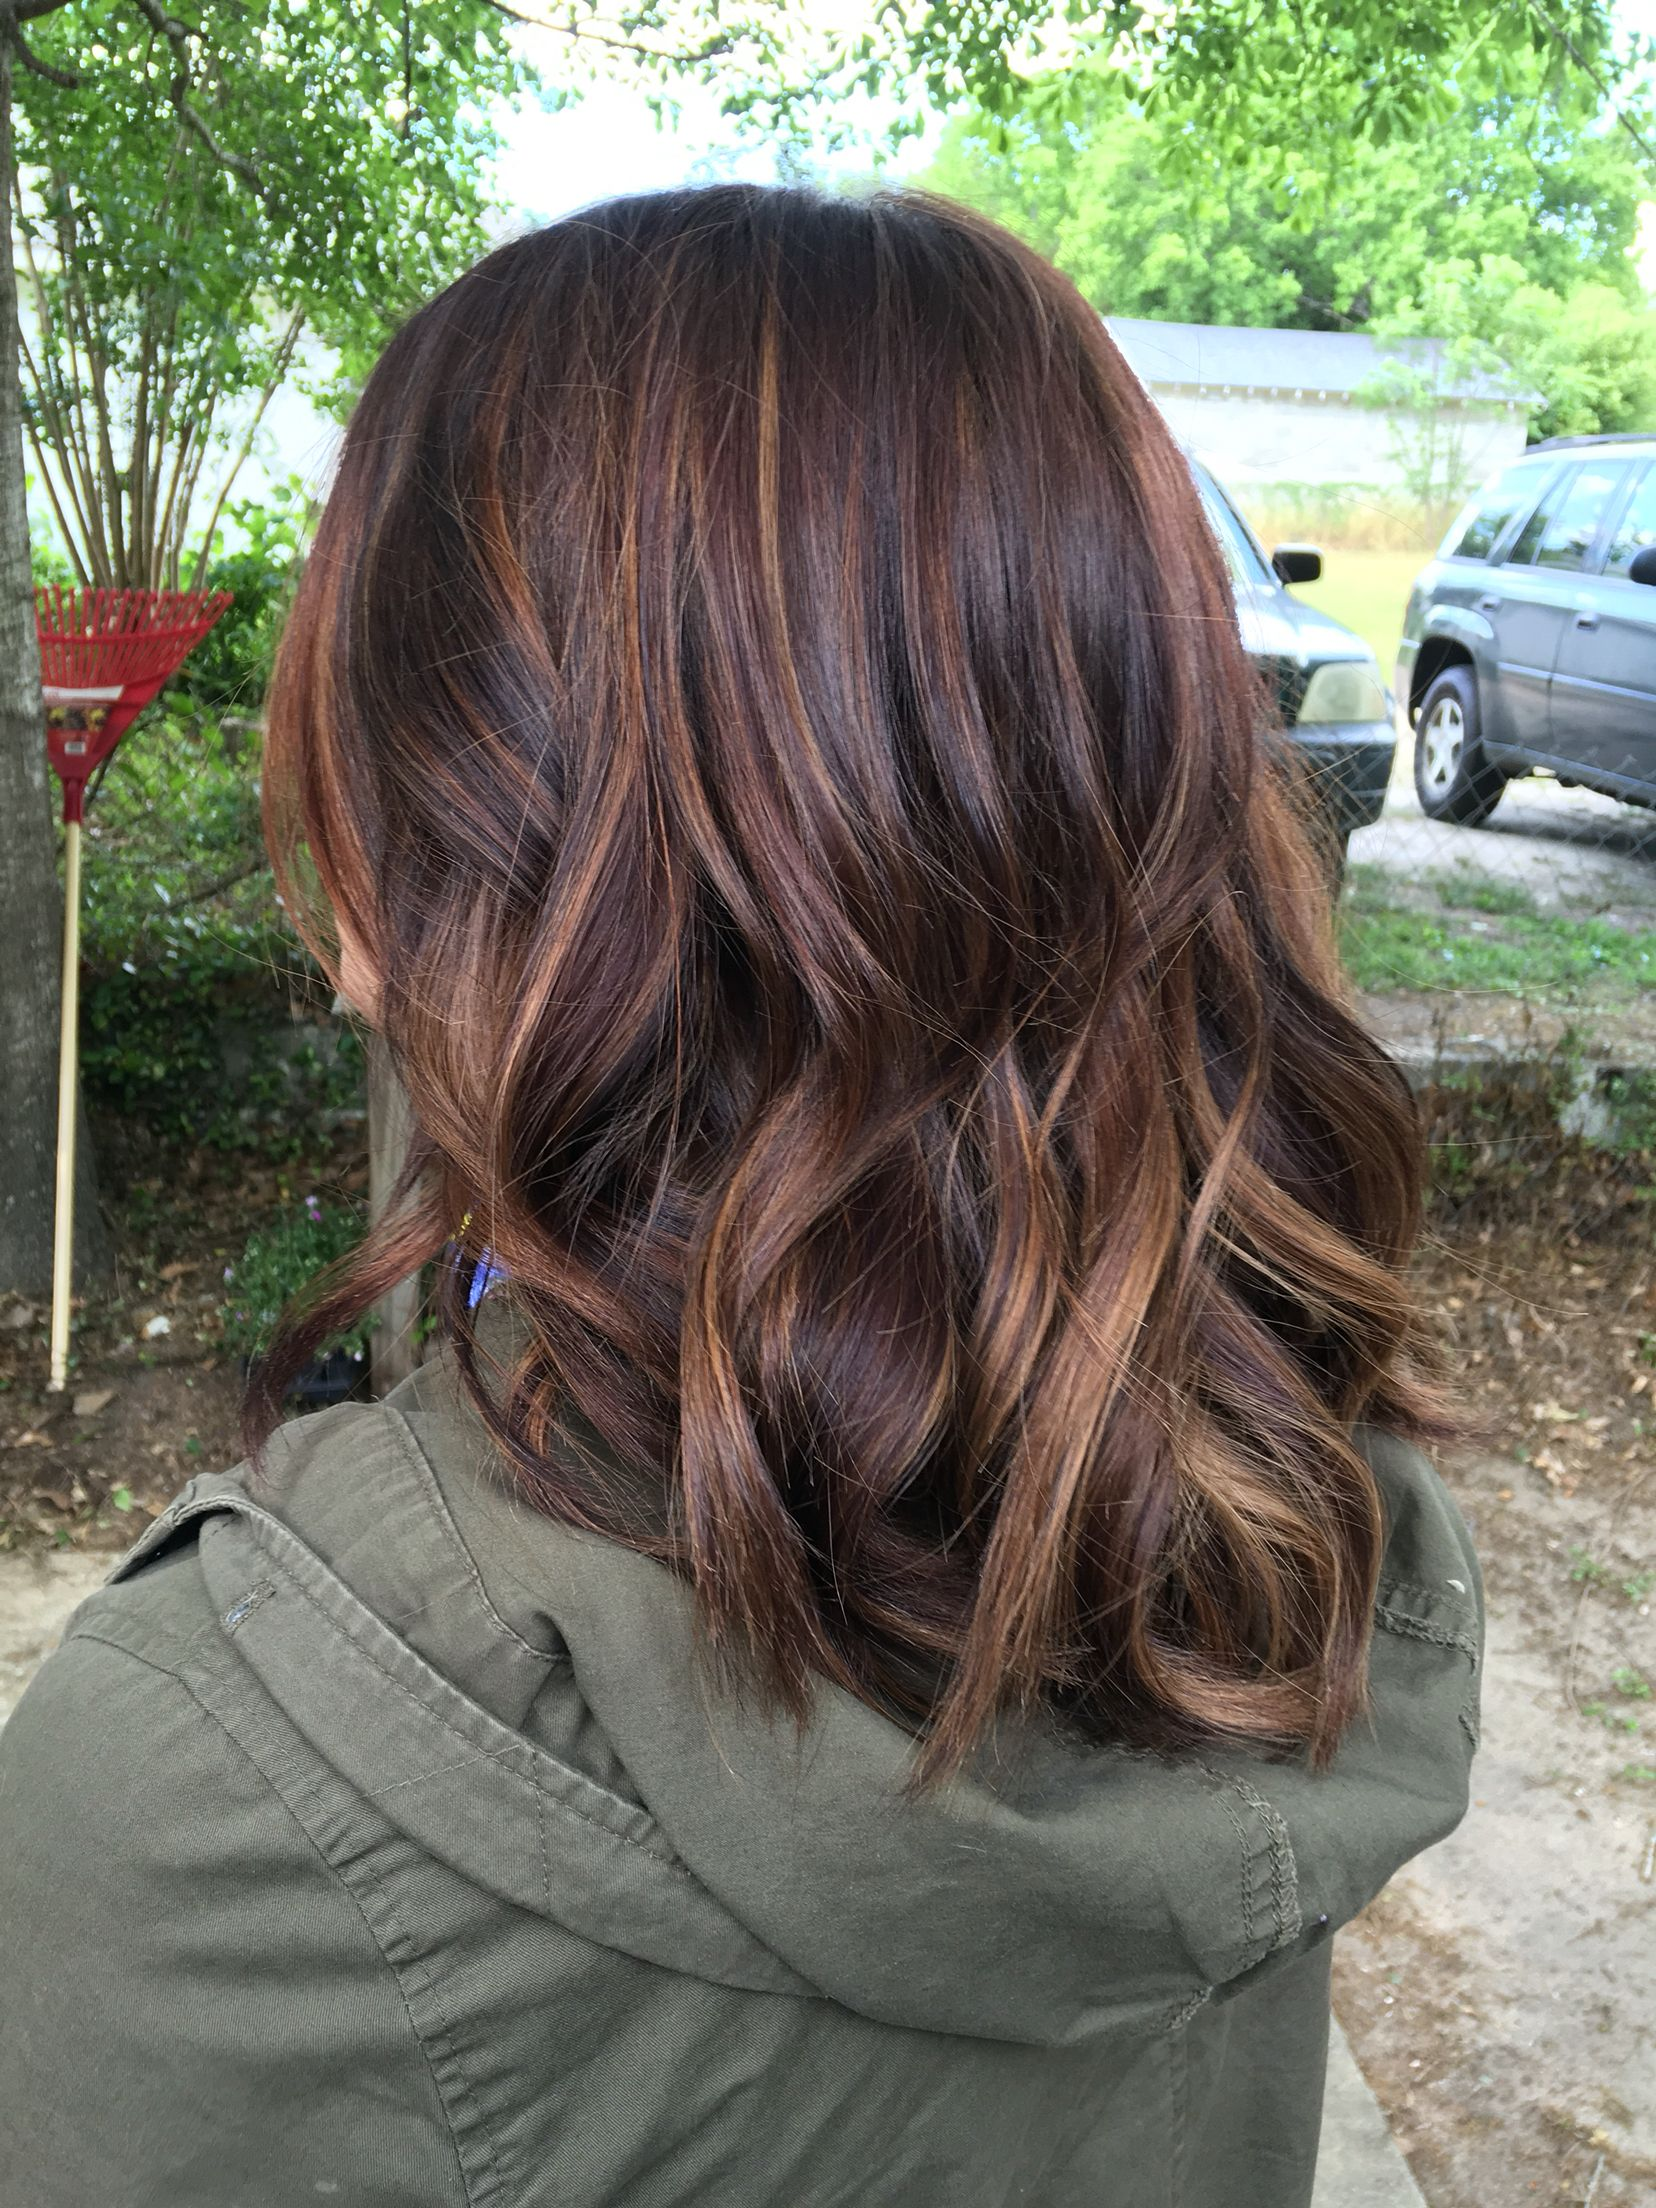 brunette balayage highlights hair aspirations Pinterest